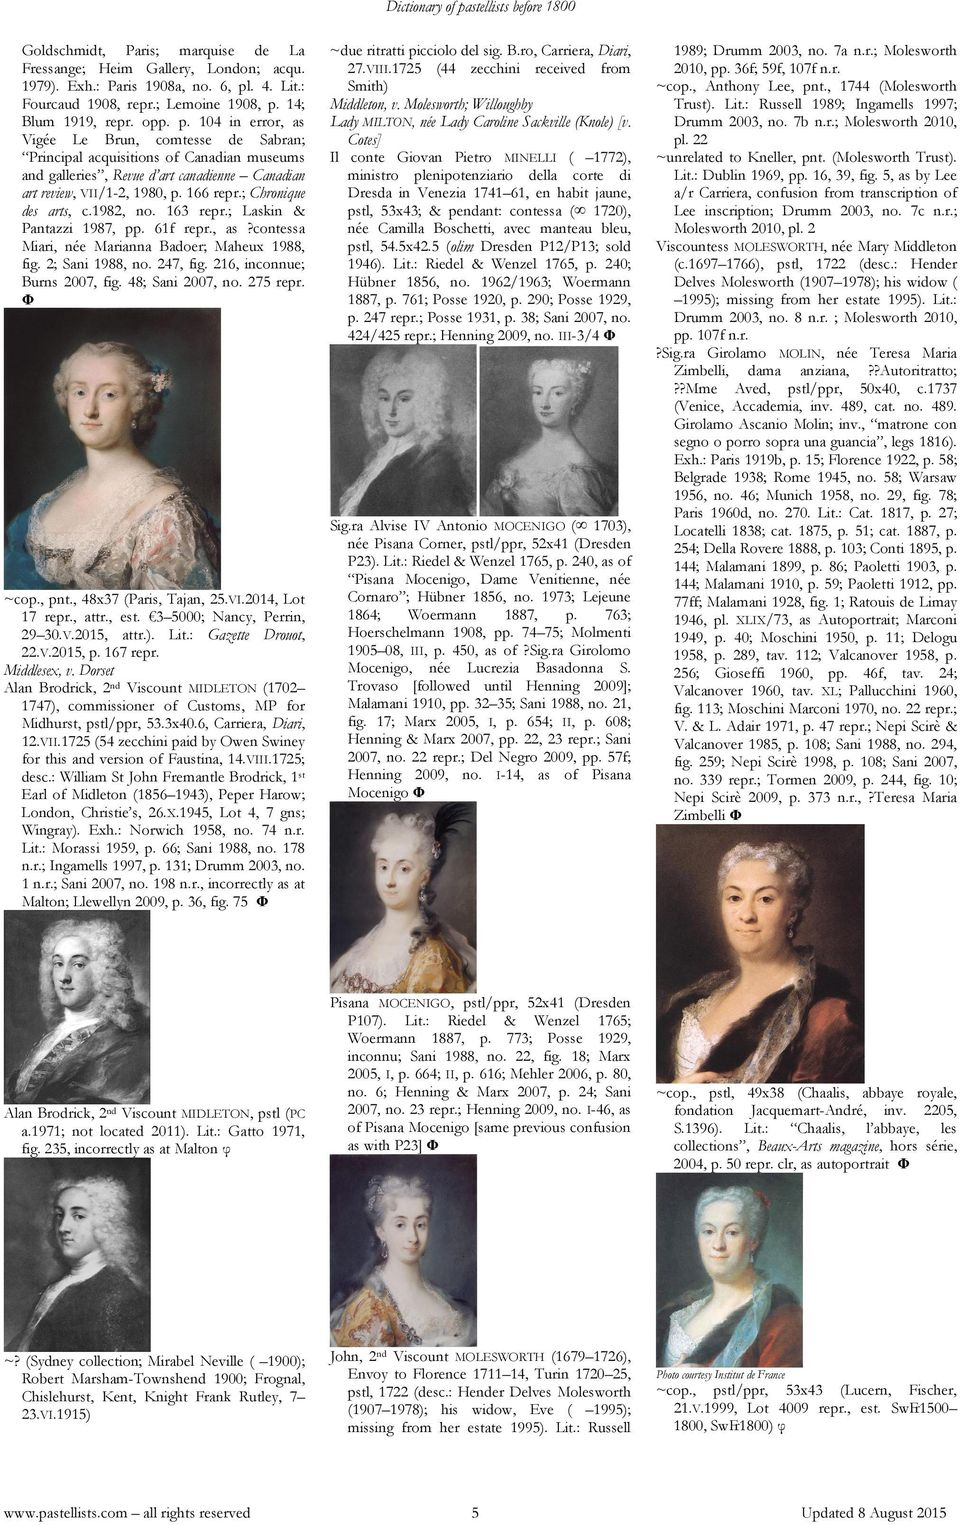 14; Blum 1919, repr. opp. p. 104 in error, as Vigée Le Brun, comtesse de Sabran; Principal acquisitions of Canadian museums and galleries, Revue d art canadienne Canadian art review, VII/1-2, 1980, p.